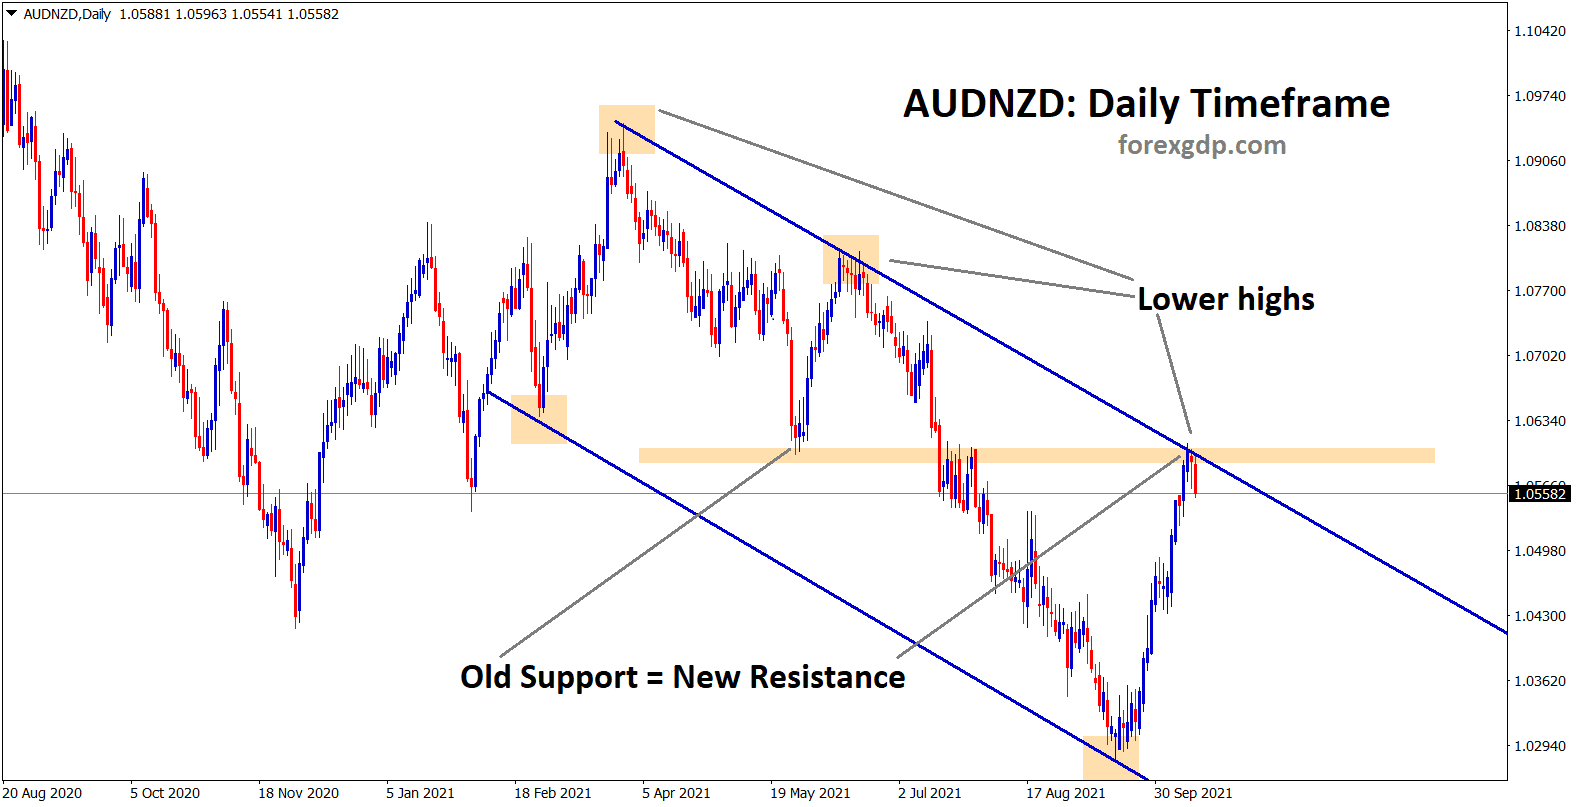 AUDNZD is making a correction from the lower high and the old support which act as new resistance